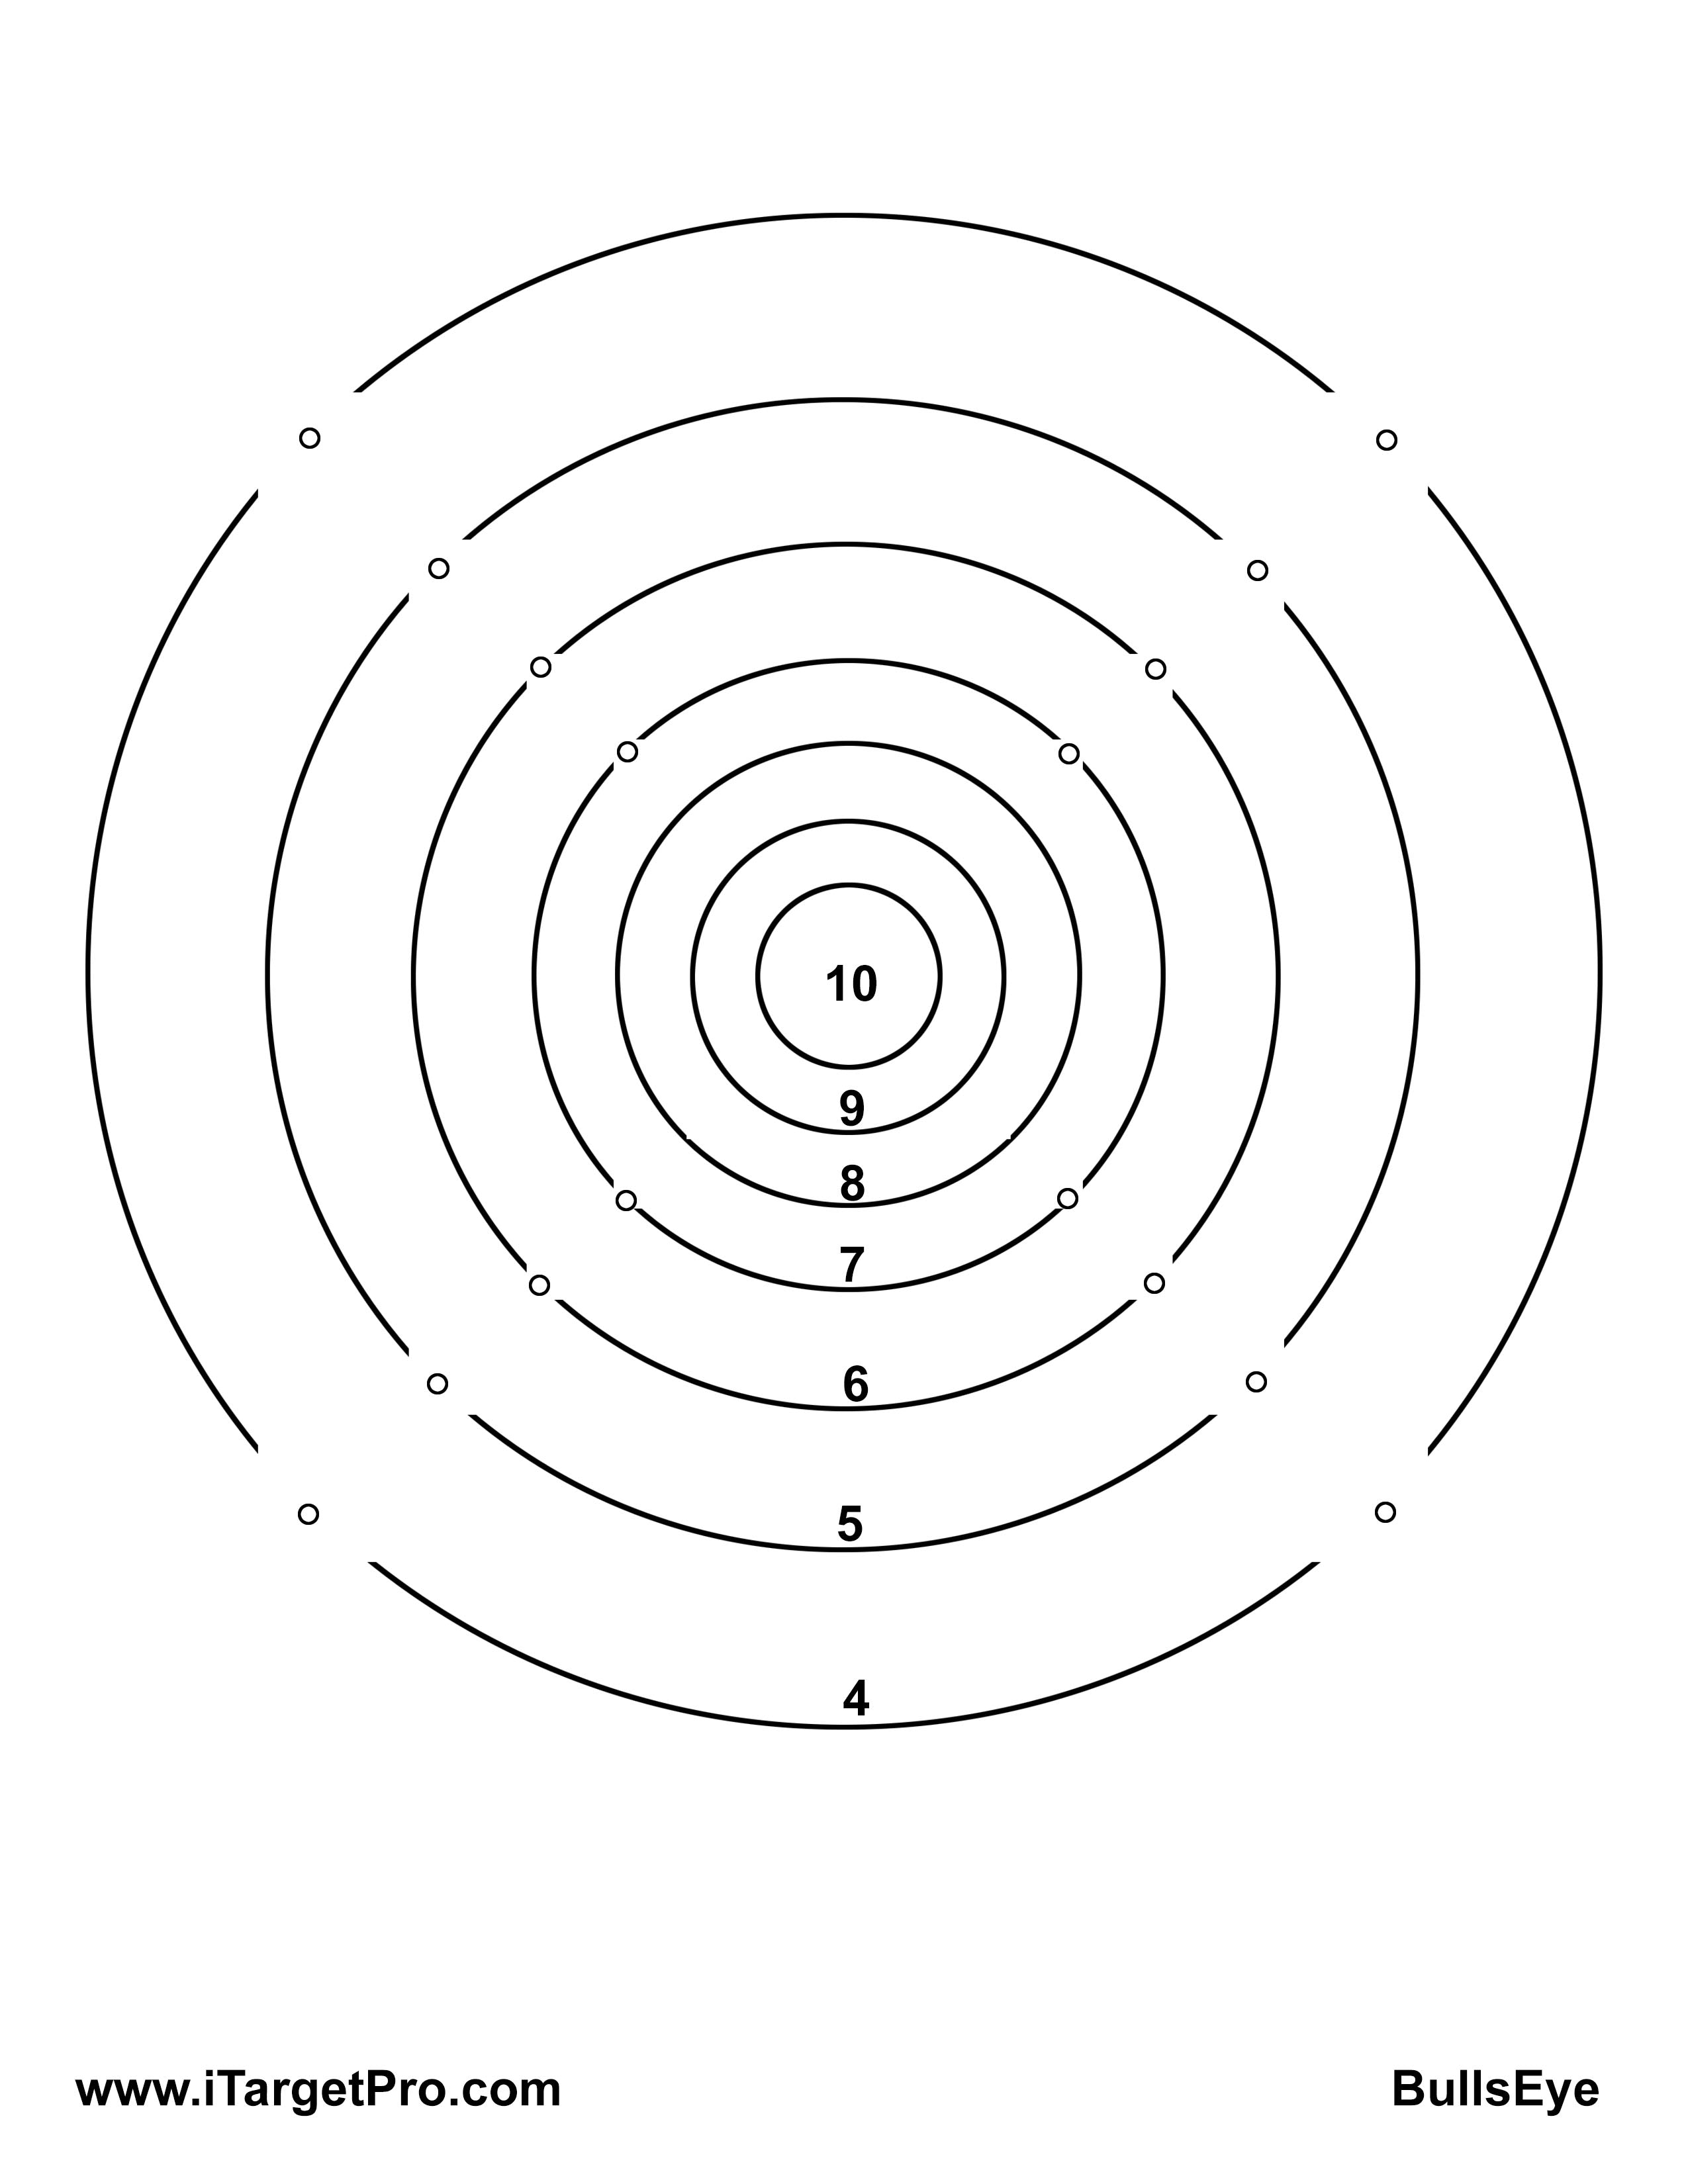 image relating to Printable Silhouette Shooting Targets known as Can I seek the services of my individual aim? iTarget